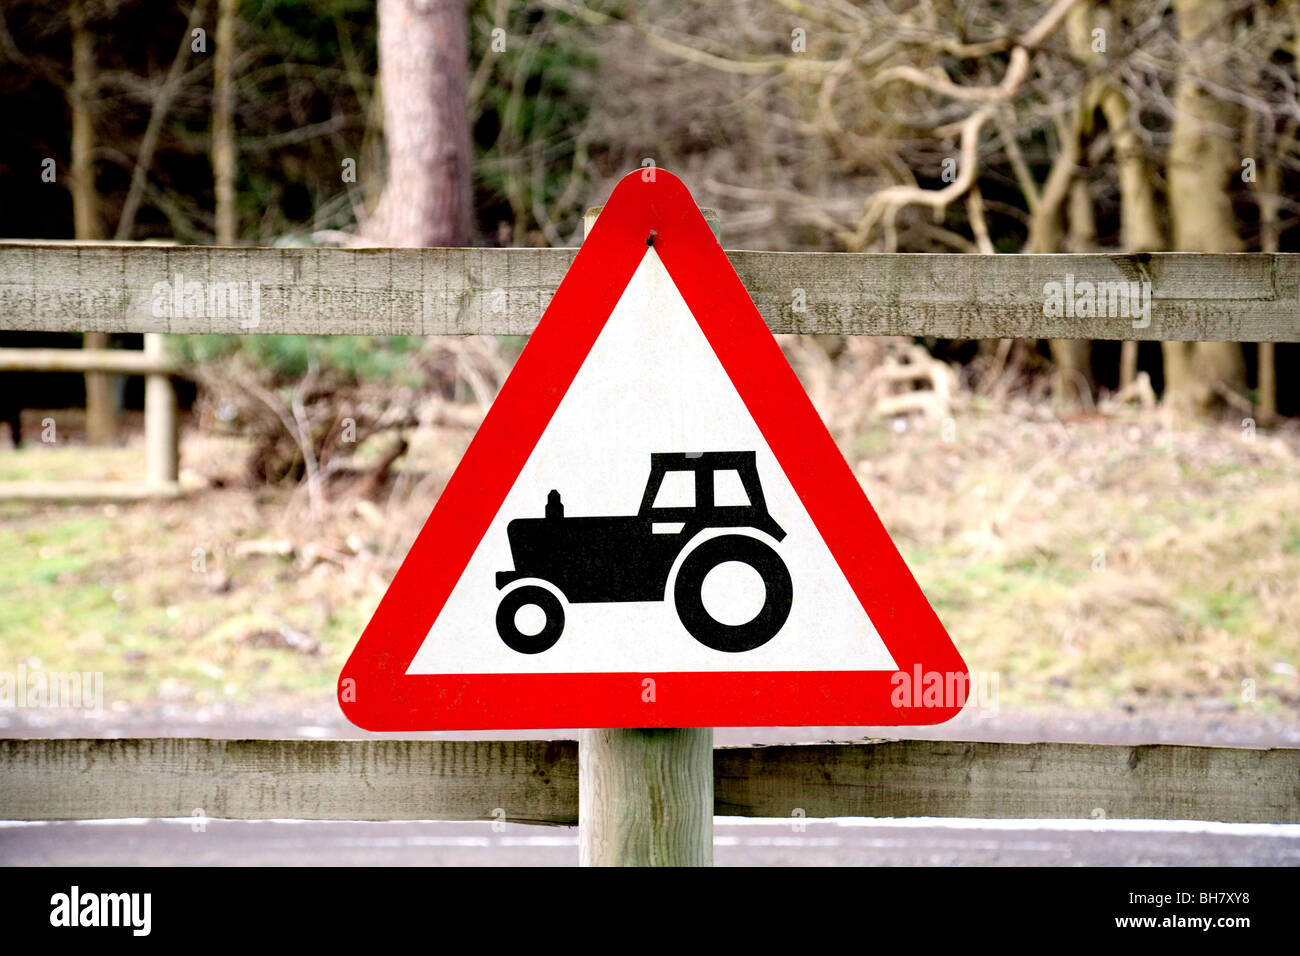 A red triangle sign for a tractor, Thetford forest Norfolk UK - Stock Image